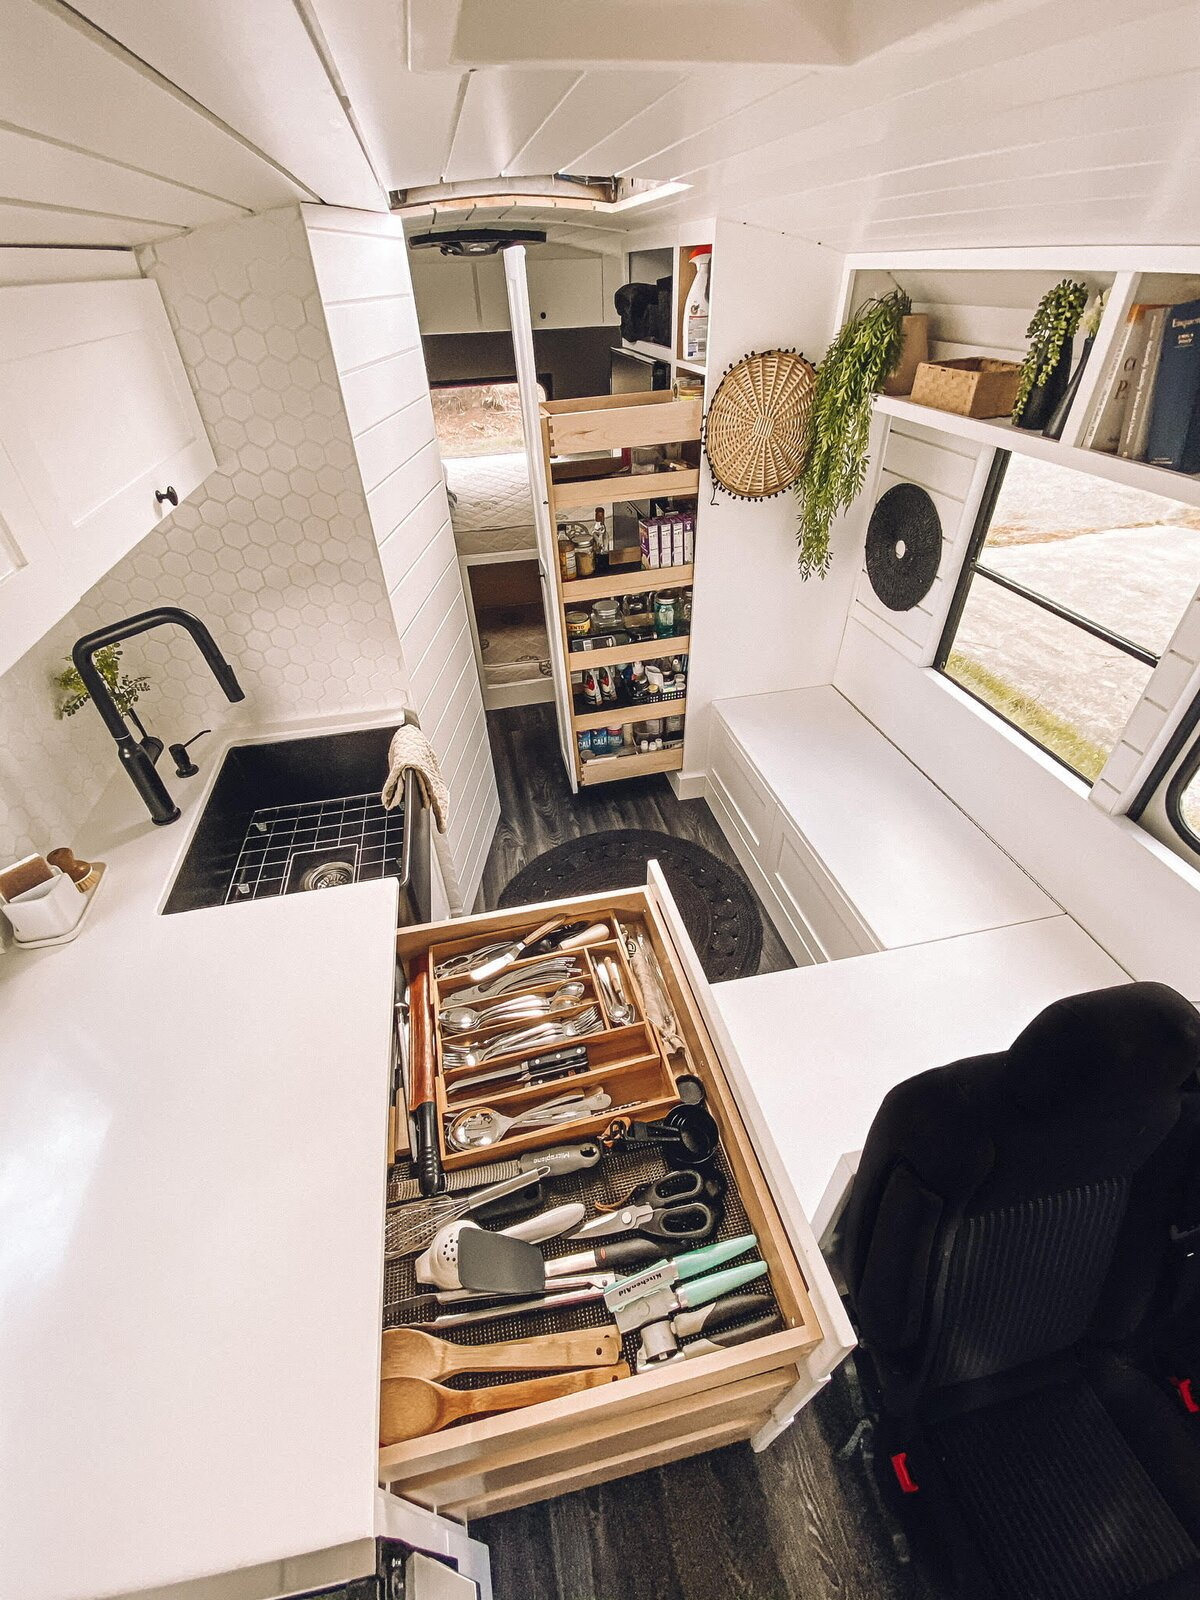 Buster the Bus pantry and kitchen drawers